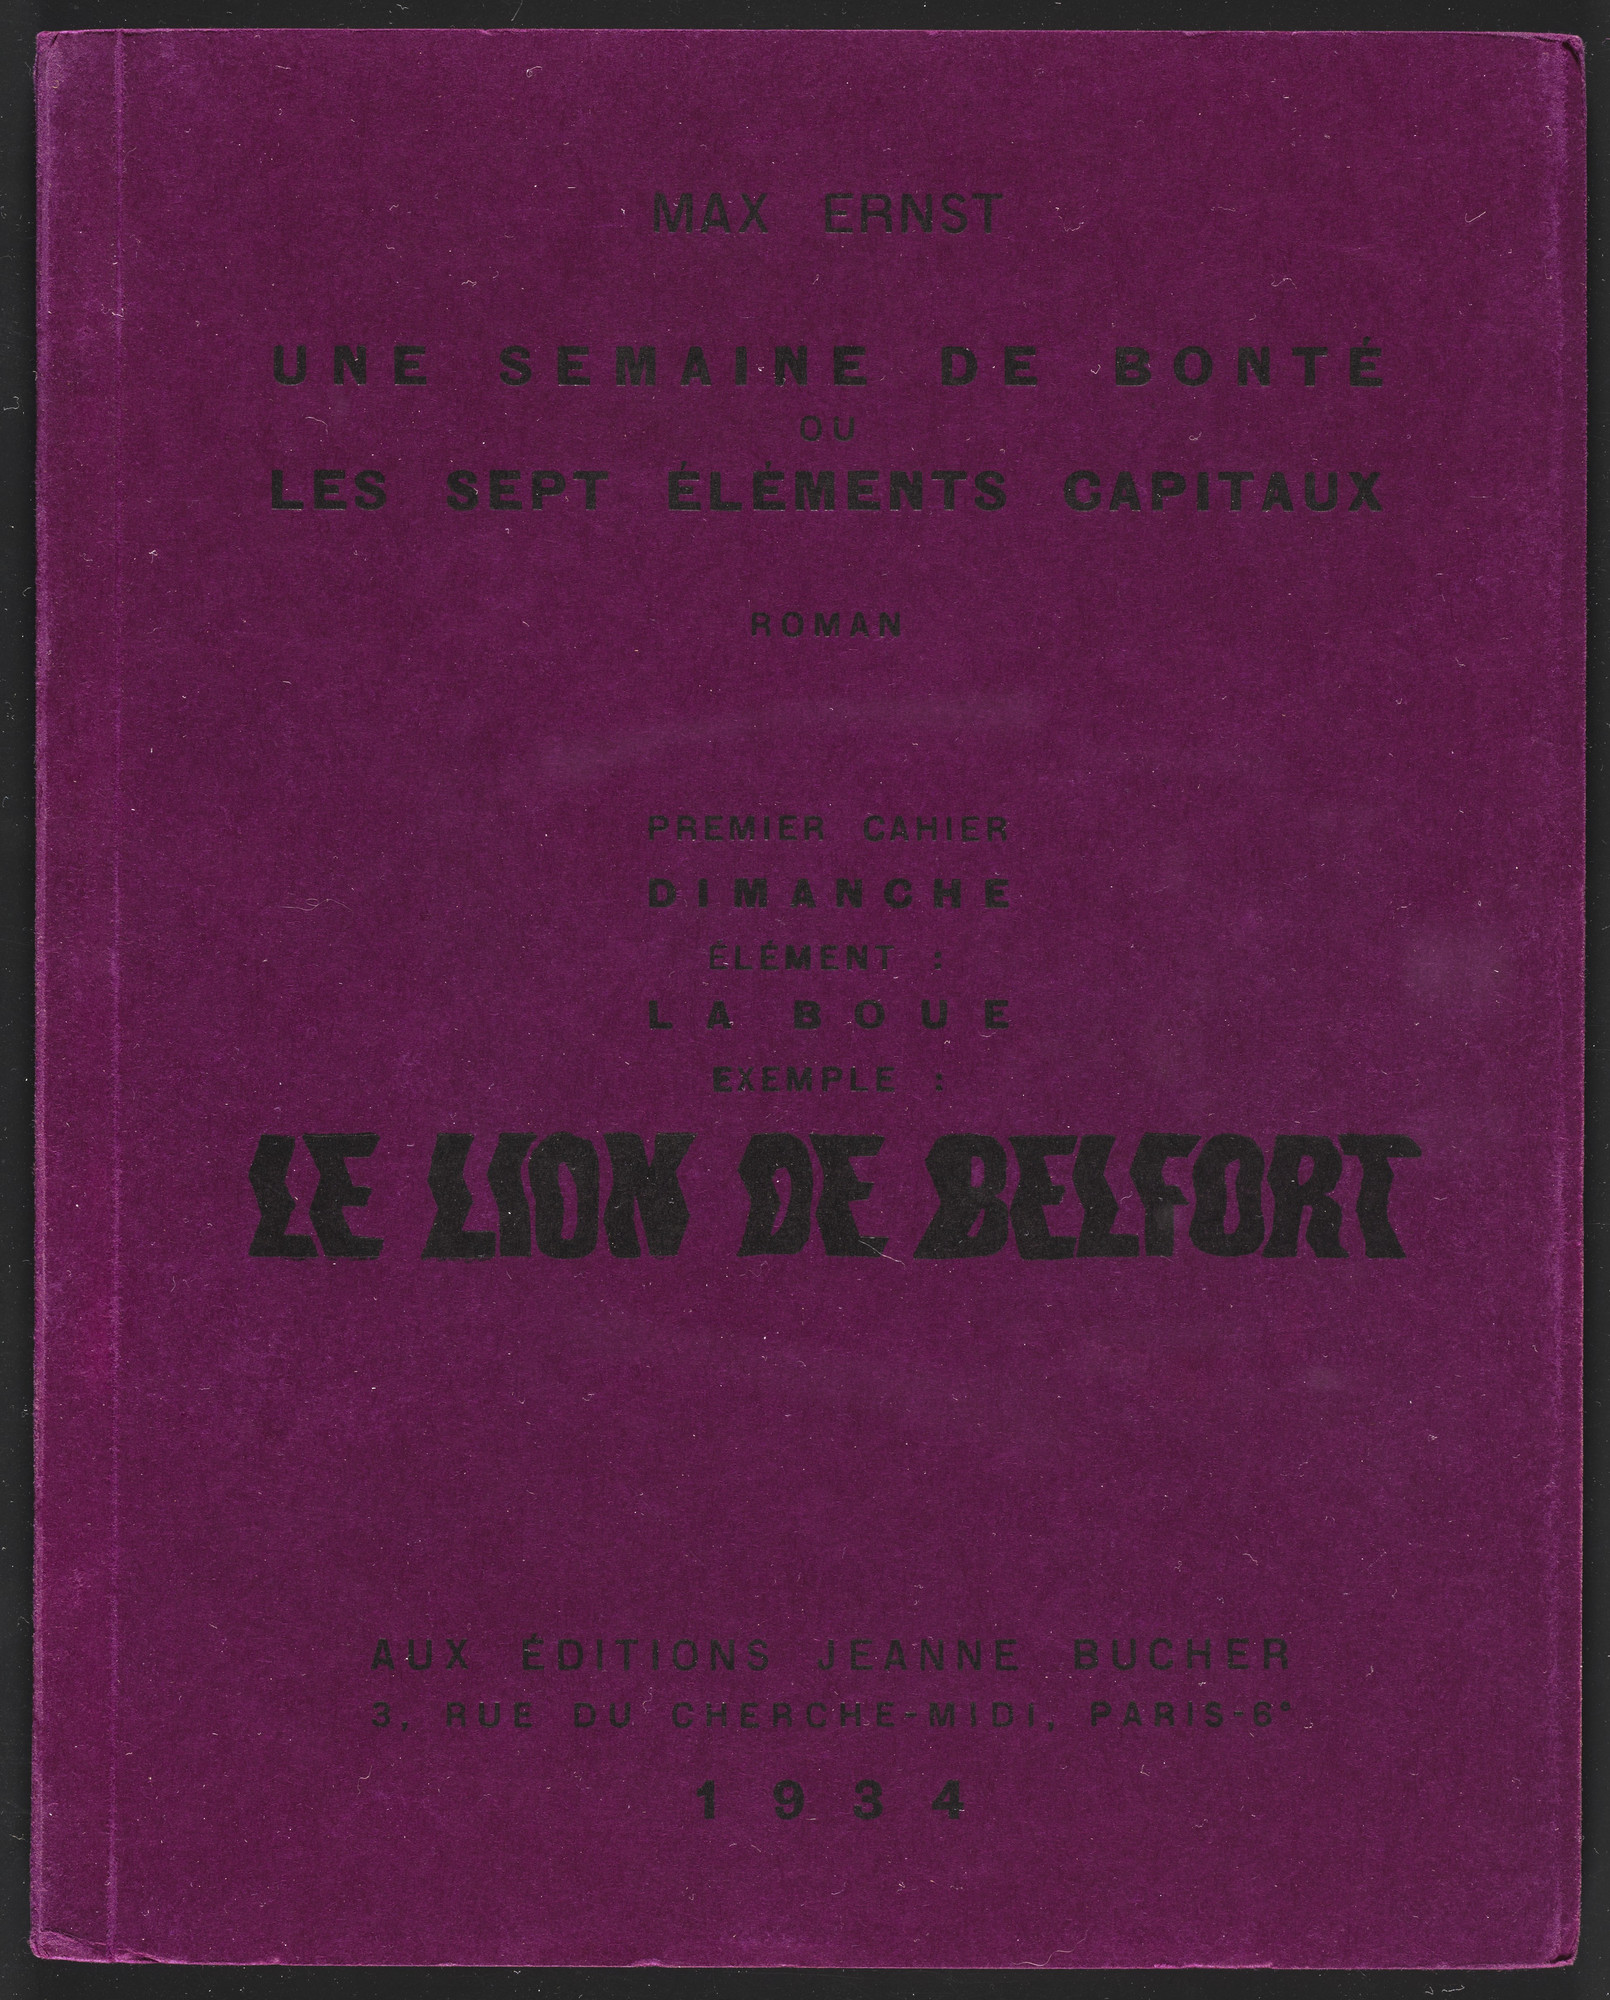 Max Ernst. Volume I: Le Lion de Belfort (Volume I: The Lion of Belfort) from Une Semaine de bonté ou les sept éléments capitaux (A Week of Kindness or the Seven Deadly Elements). 1933–34, published 1934